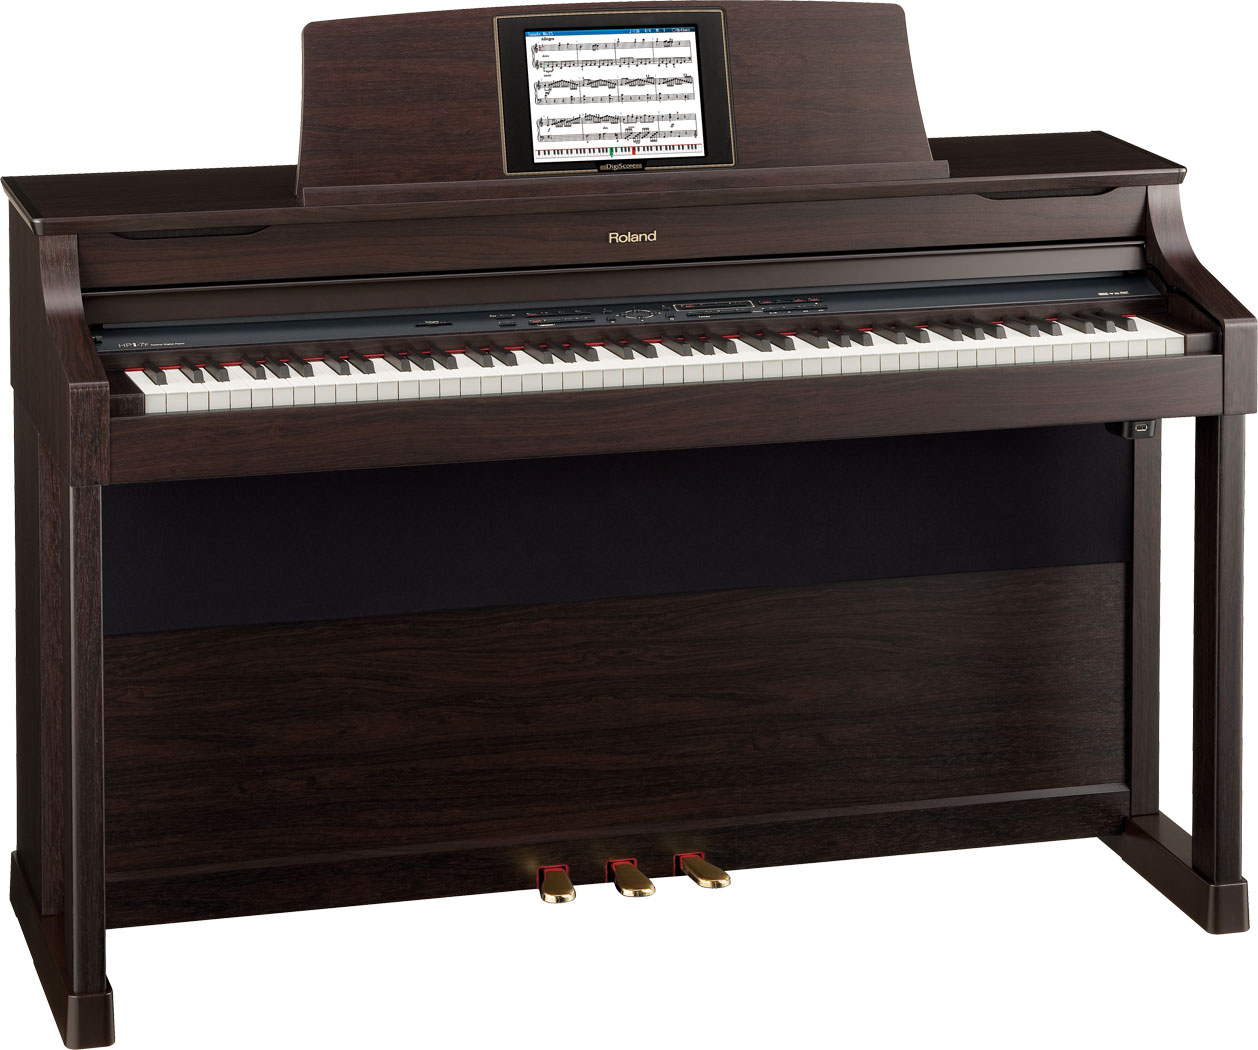 wooden digital piano by roland